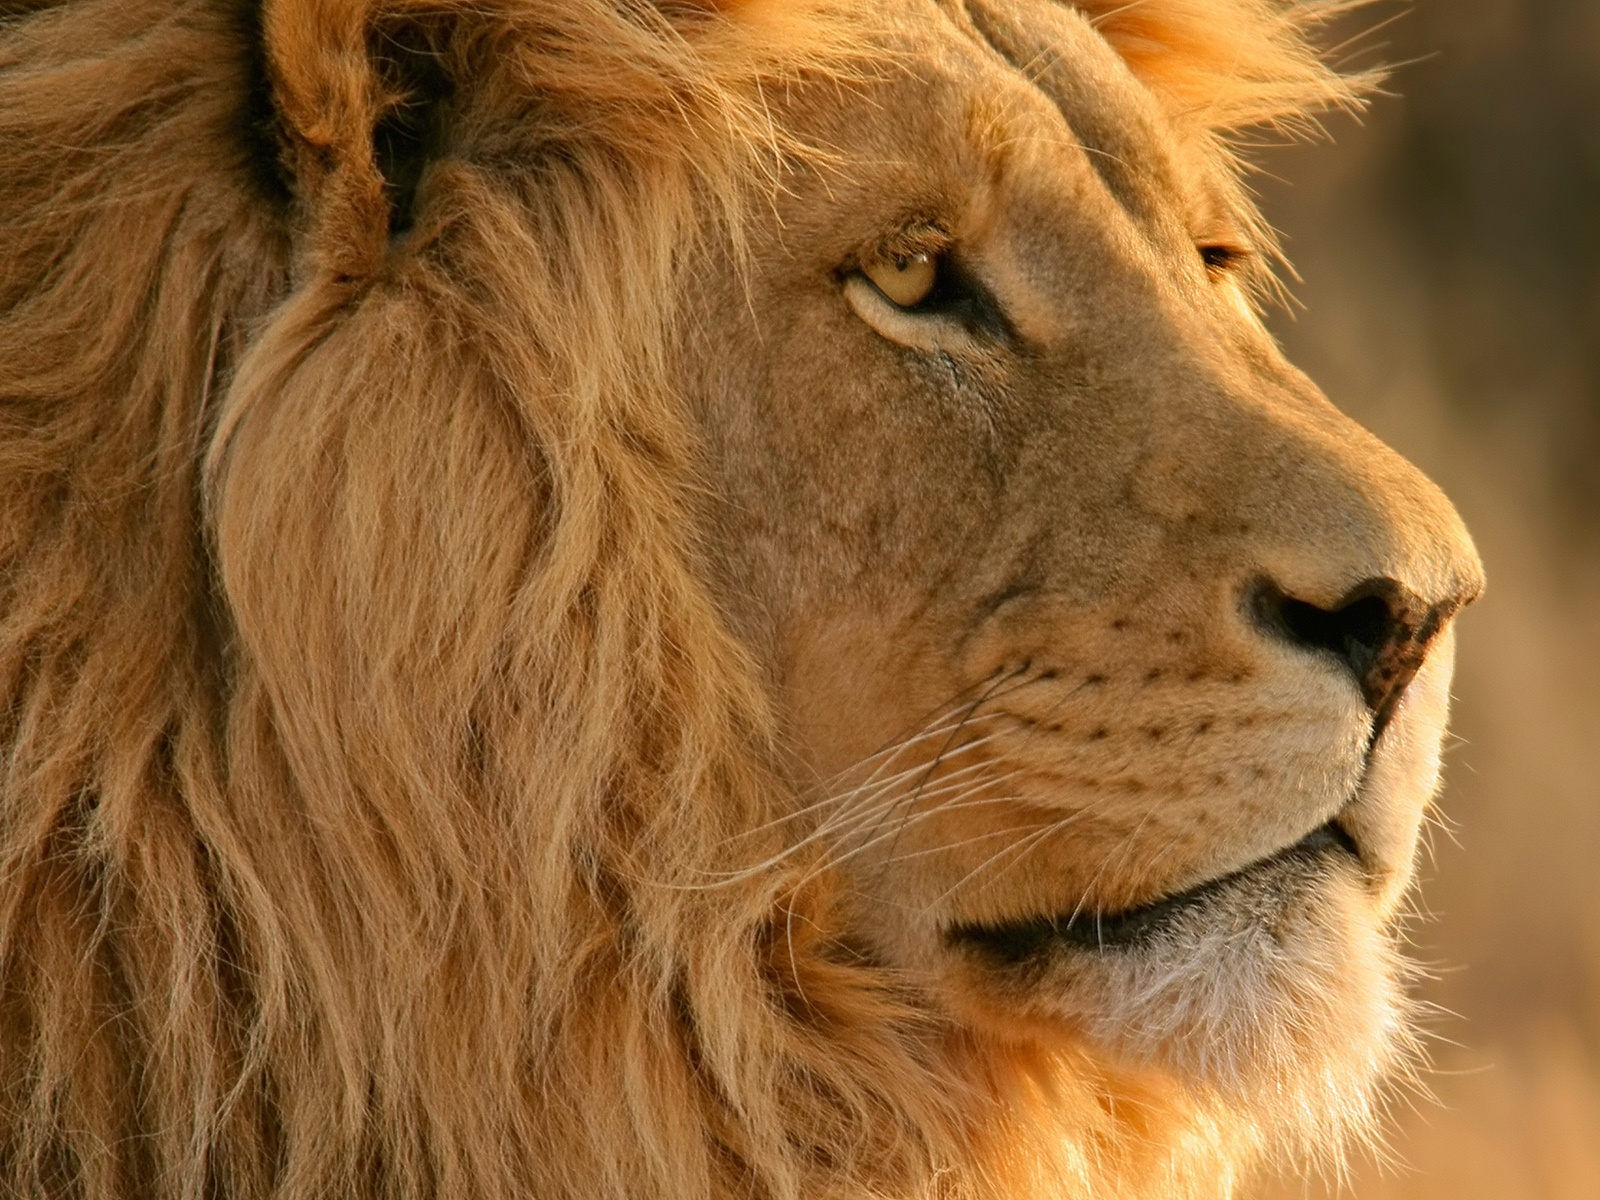 Lion Close Up Desktop Images 19087 High Resolution